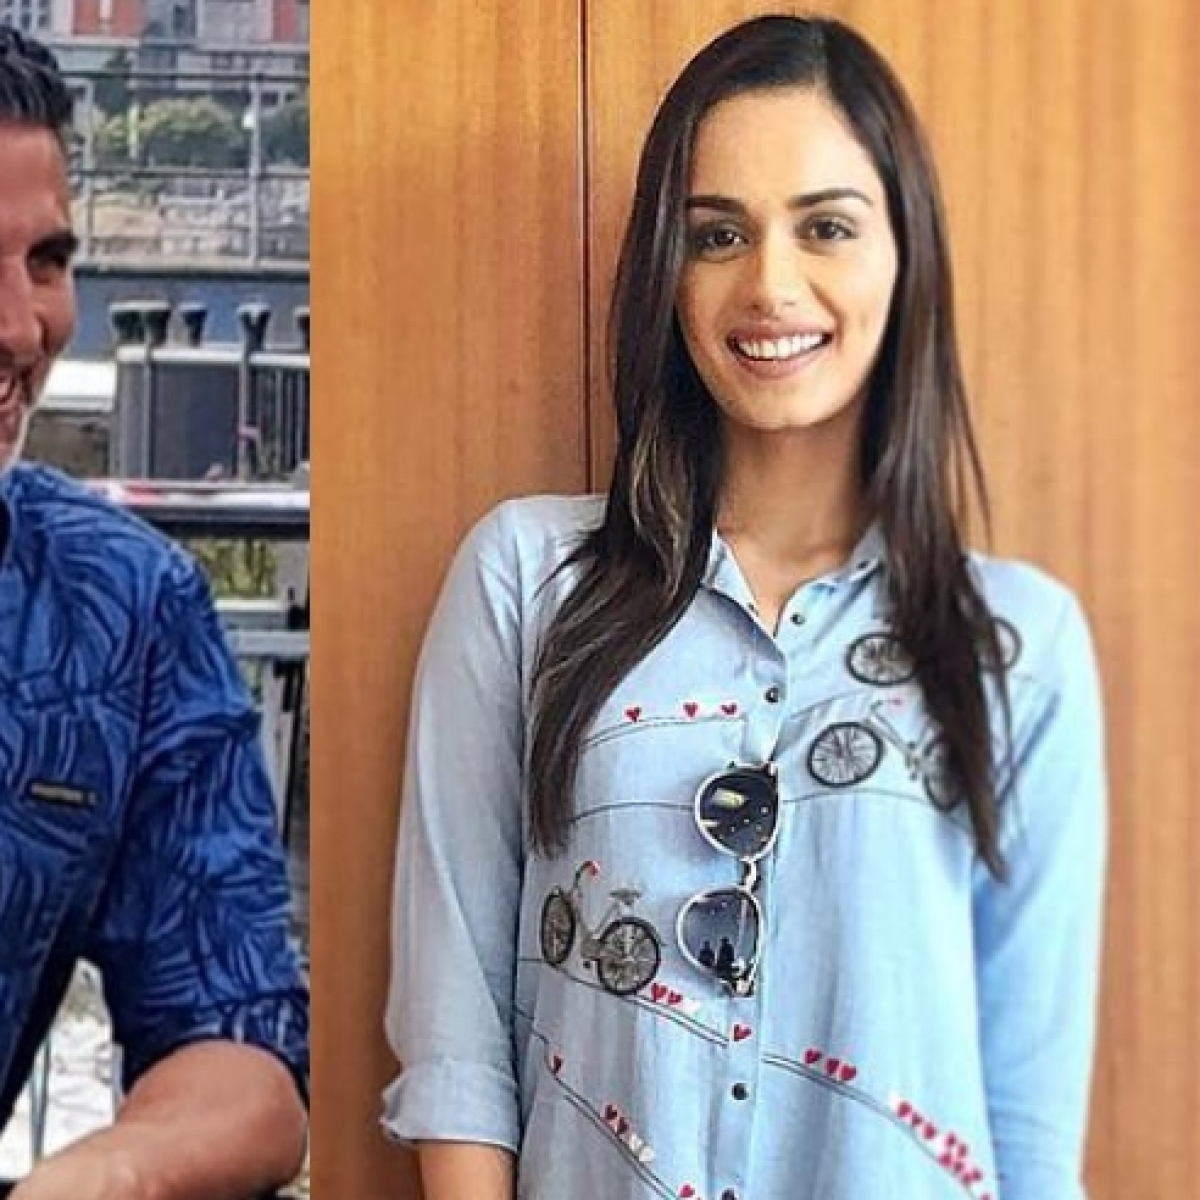 Miss World 2017 Manushi Chillar to star opposite Akshay Kumar in 'Prithviraj' as Sanyogita